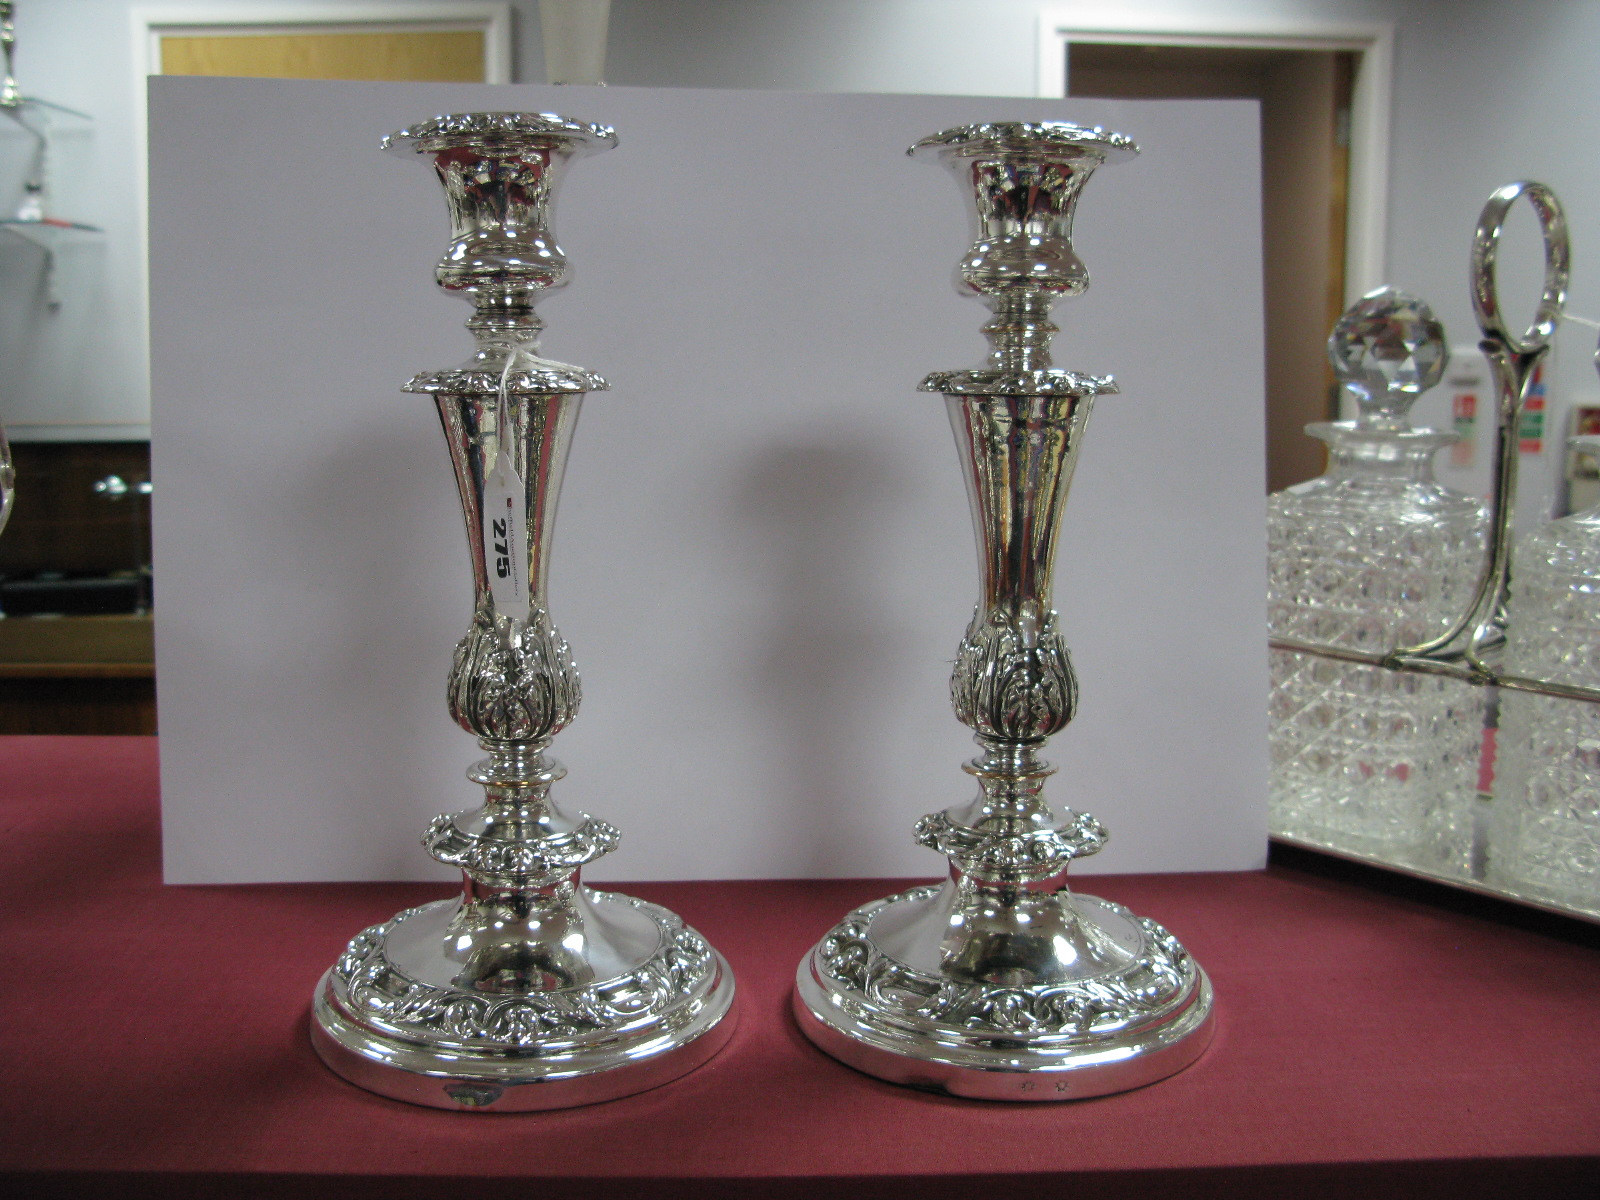 Lot 275 - Matthew Boulton; A Pair of XIX Century Plated Candlesticks, each of tapering circular form with